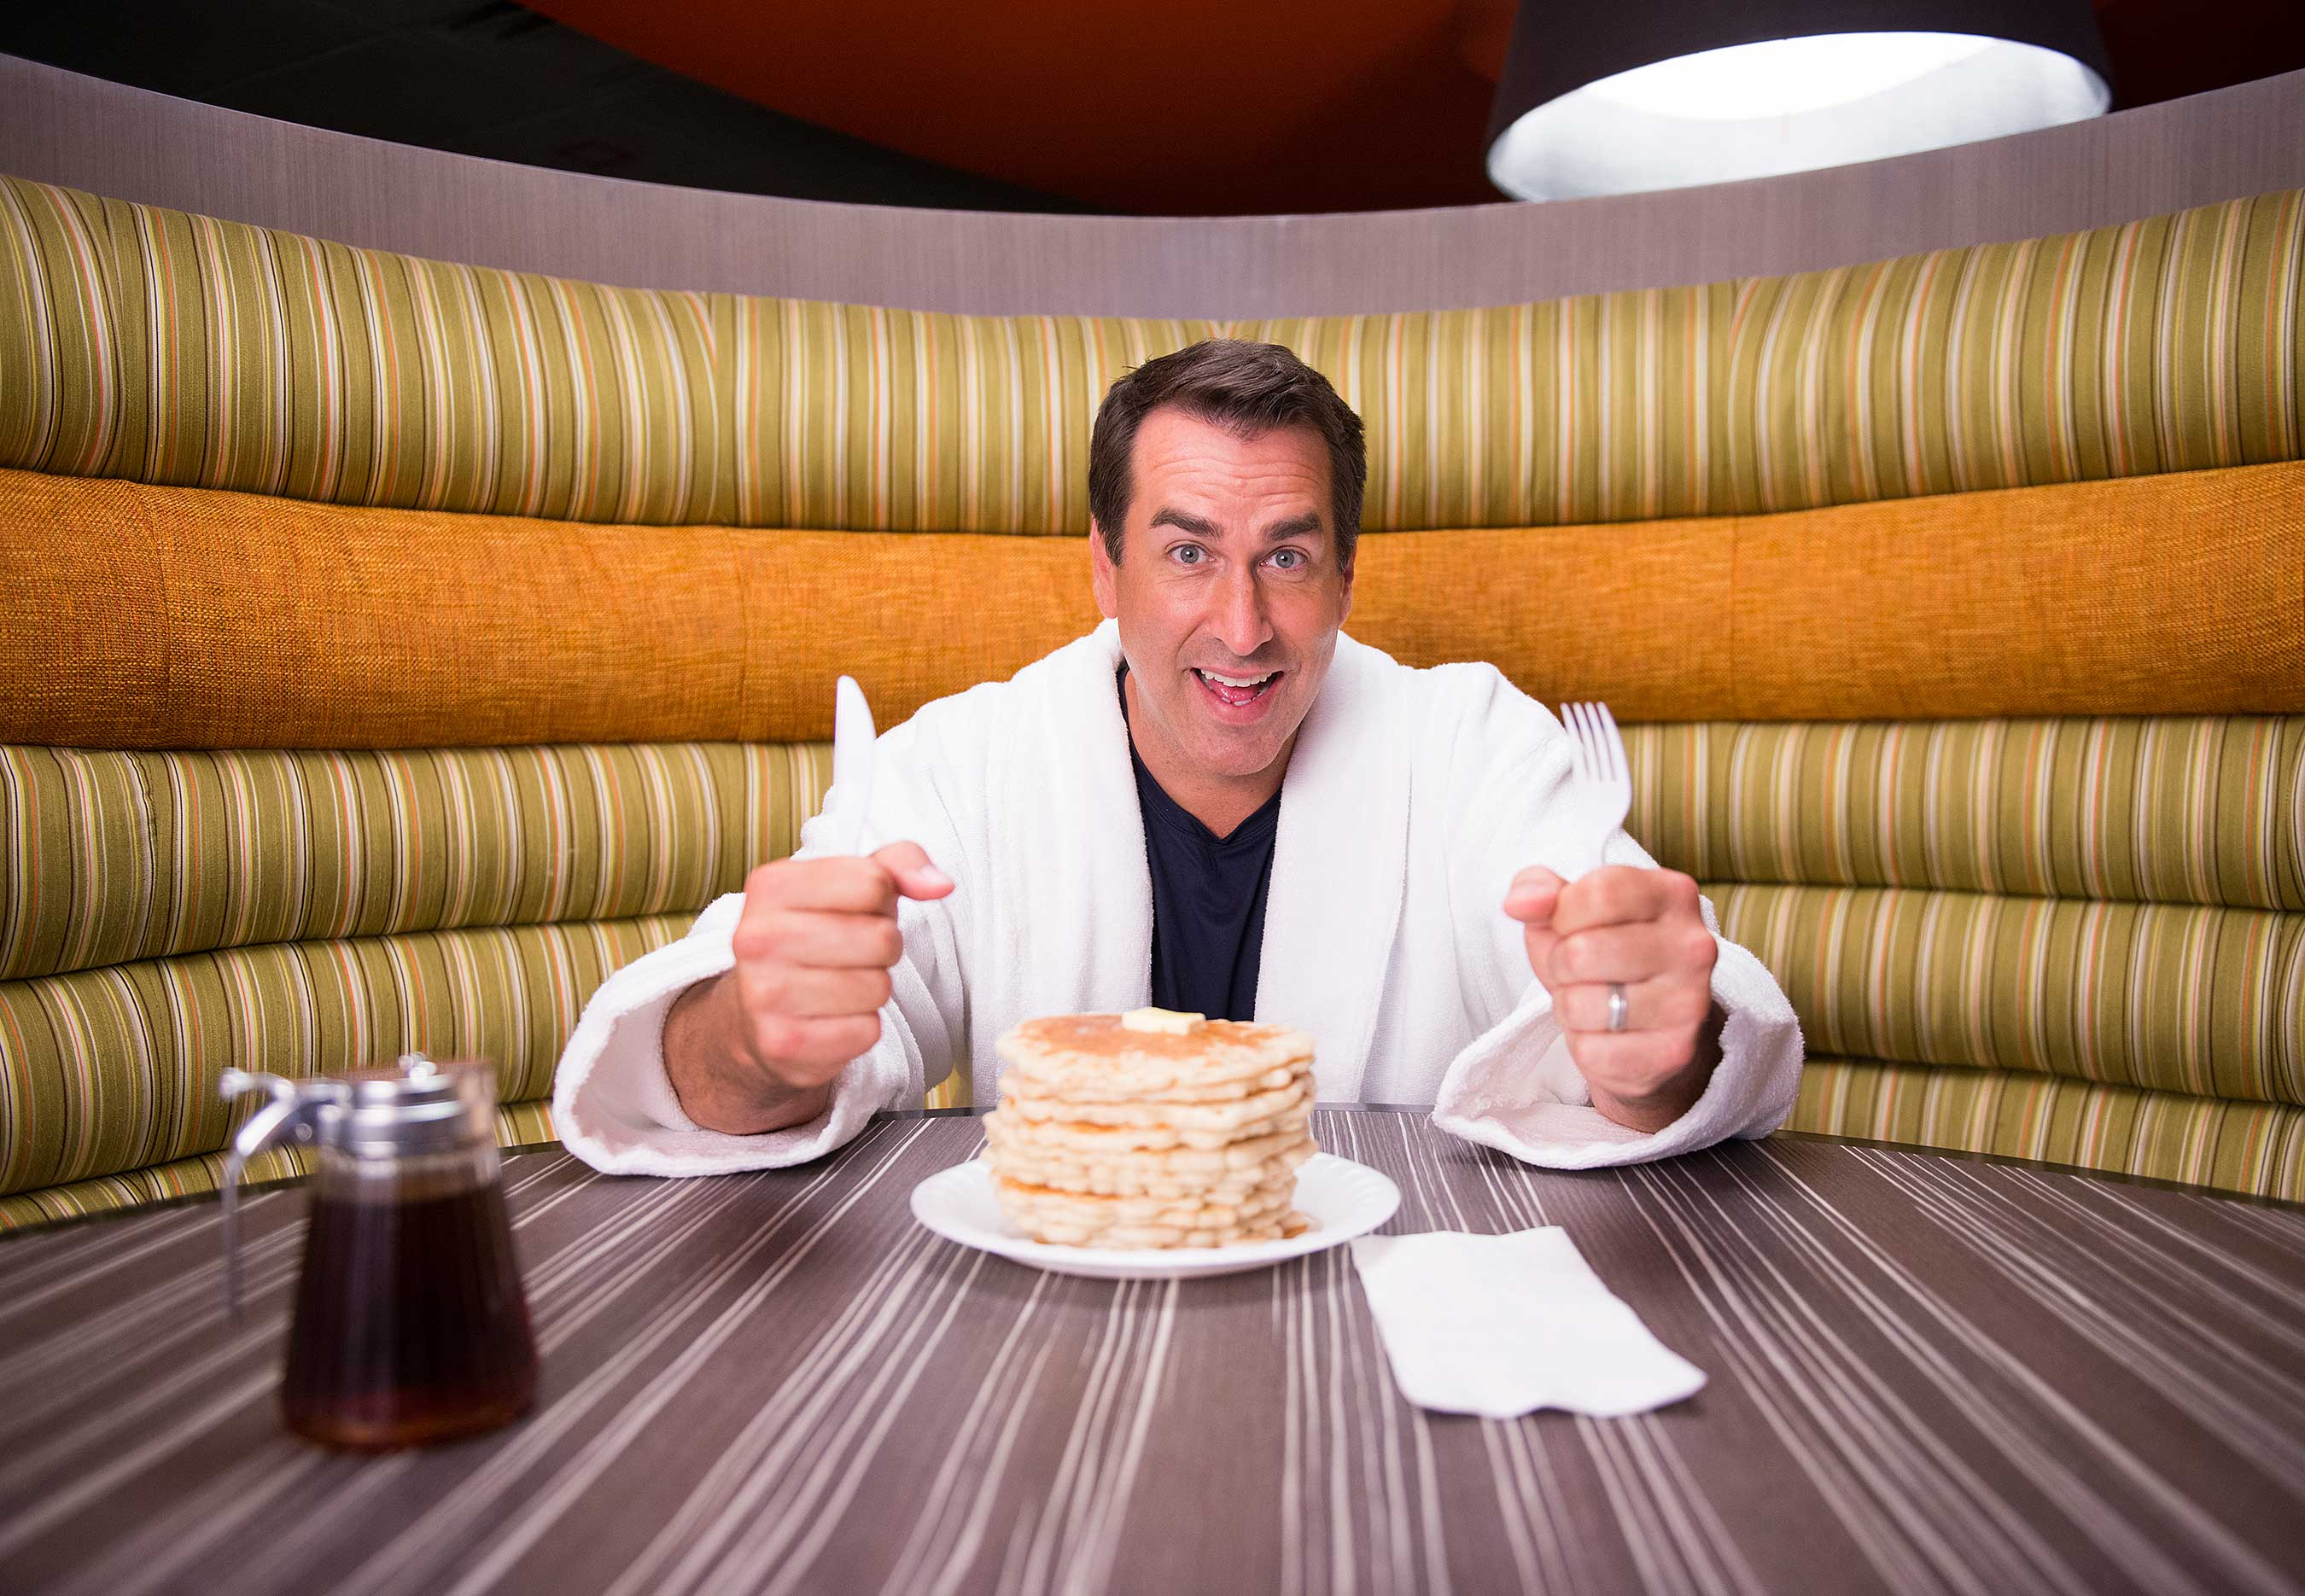 In his new role, Rob Riggle is responsible for delivering comedic genius and driving Express Start™ breakfast enthusiasm through the fall of 2015.